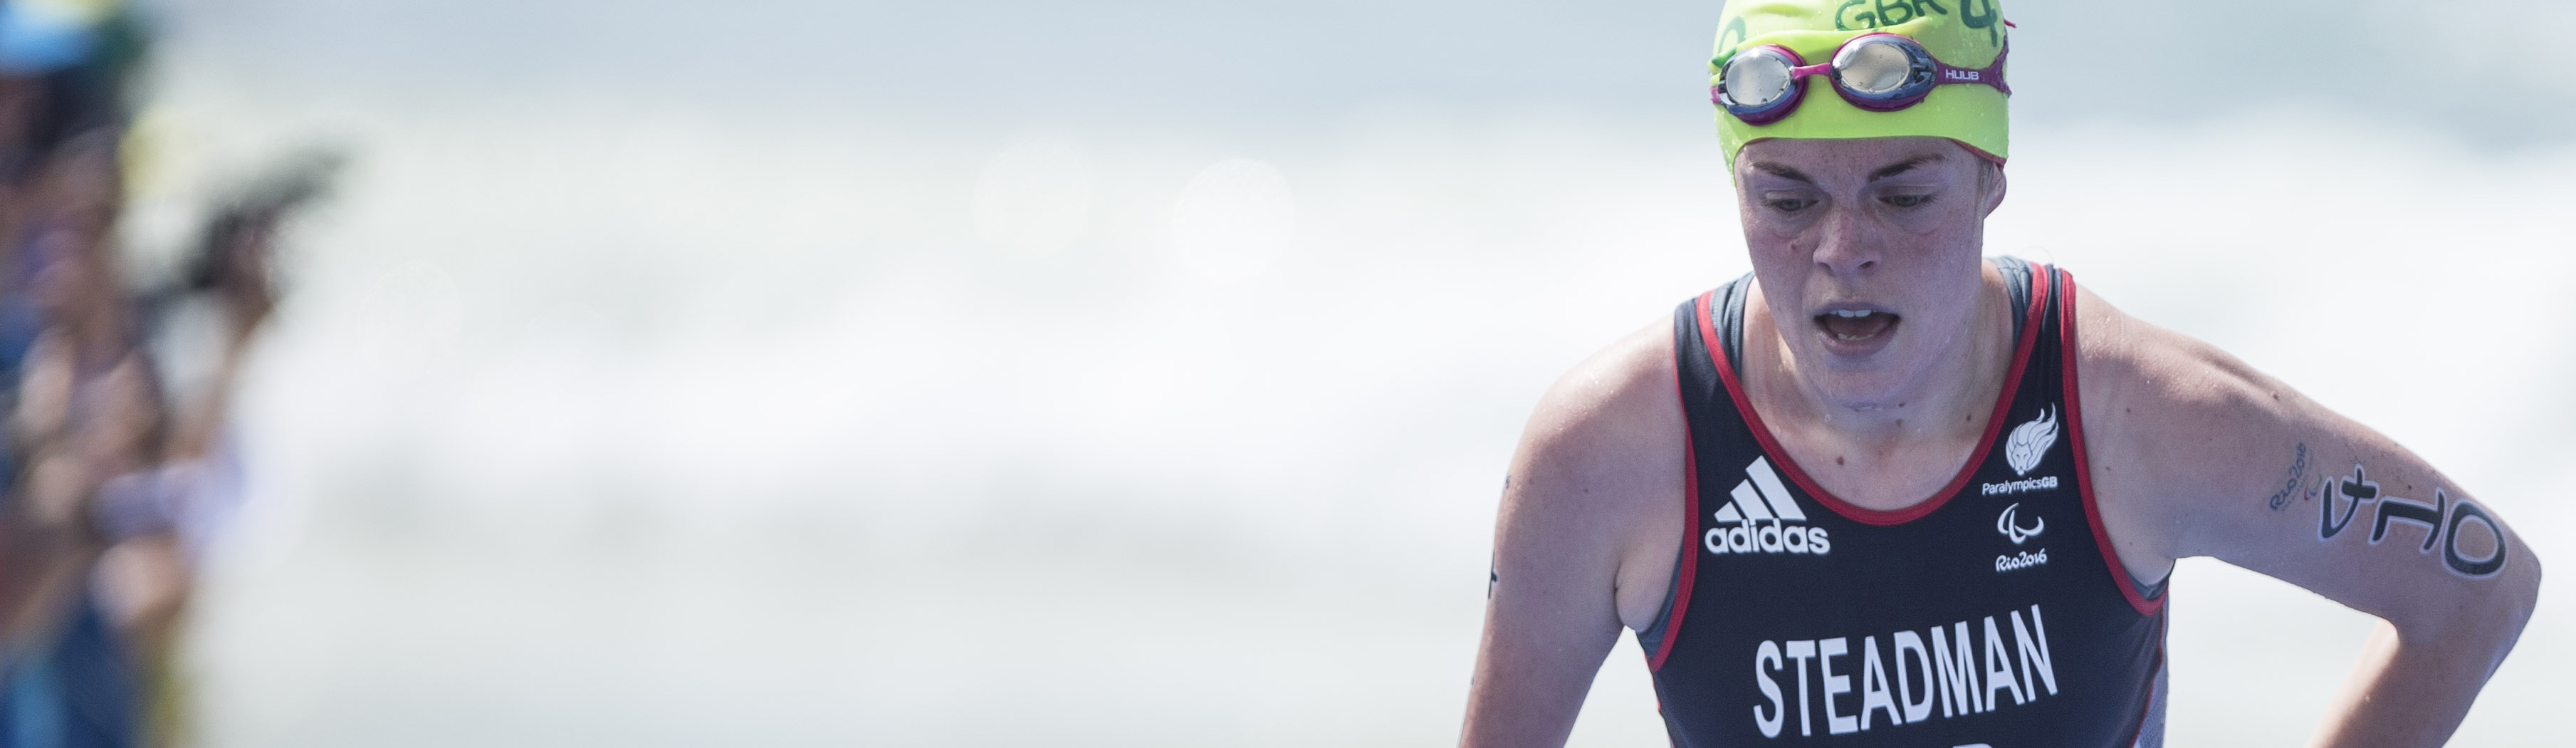 Image of Lauren Steadman